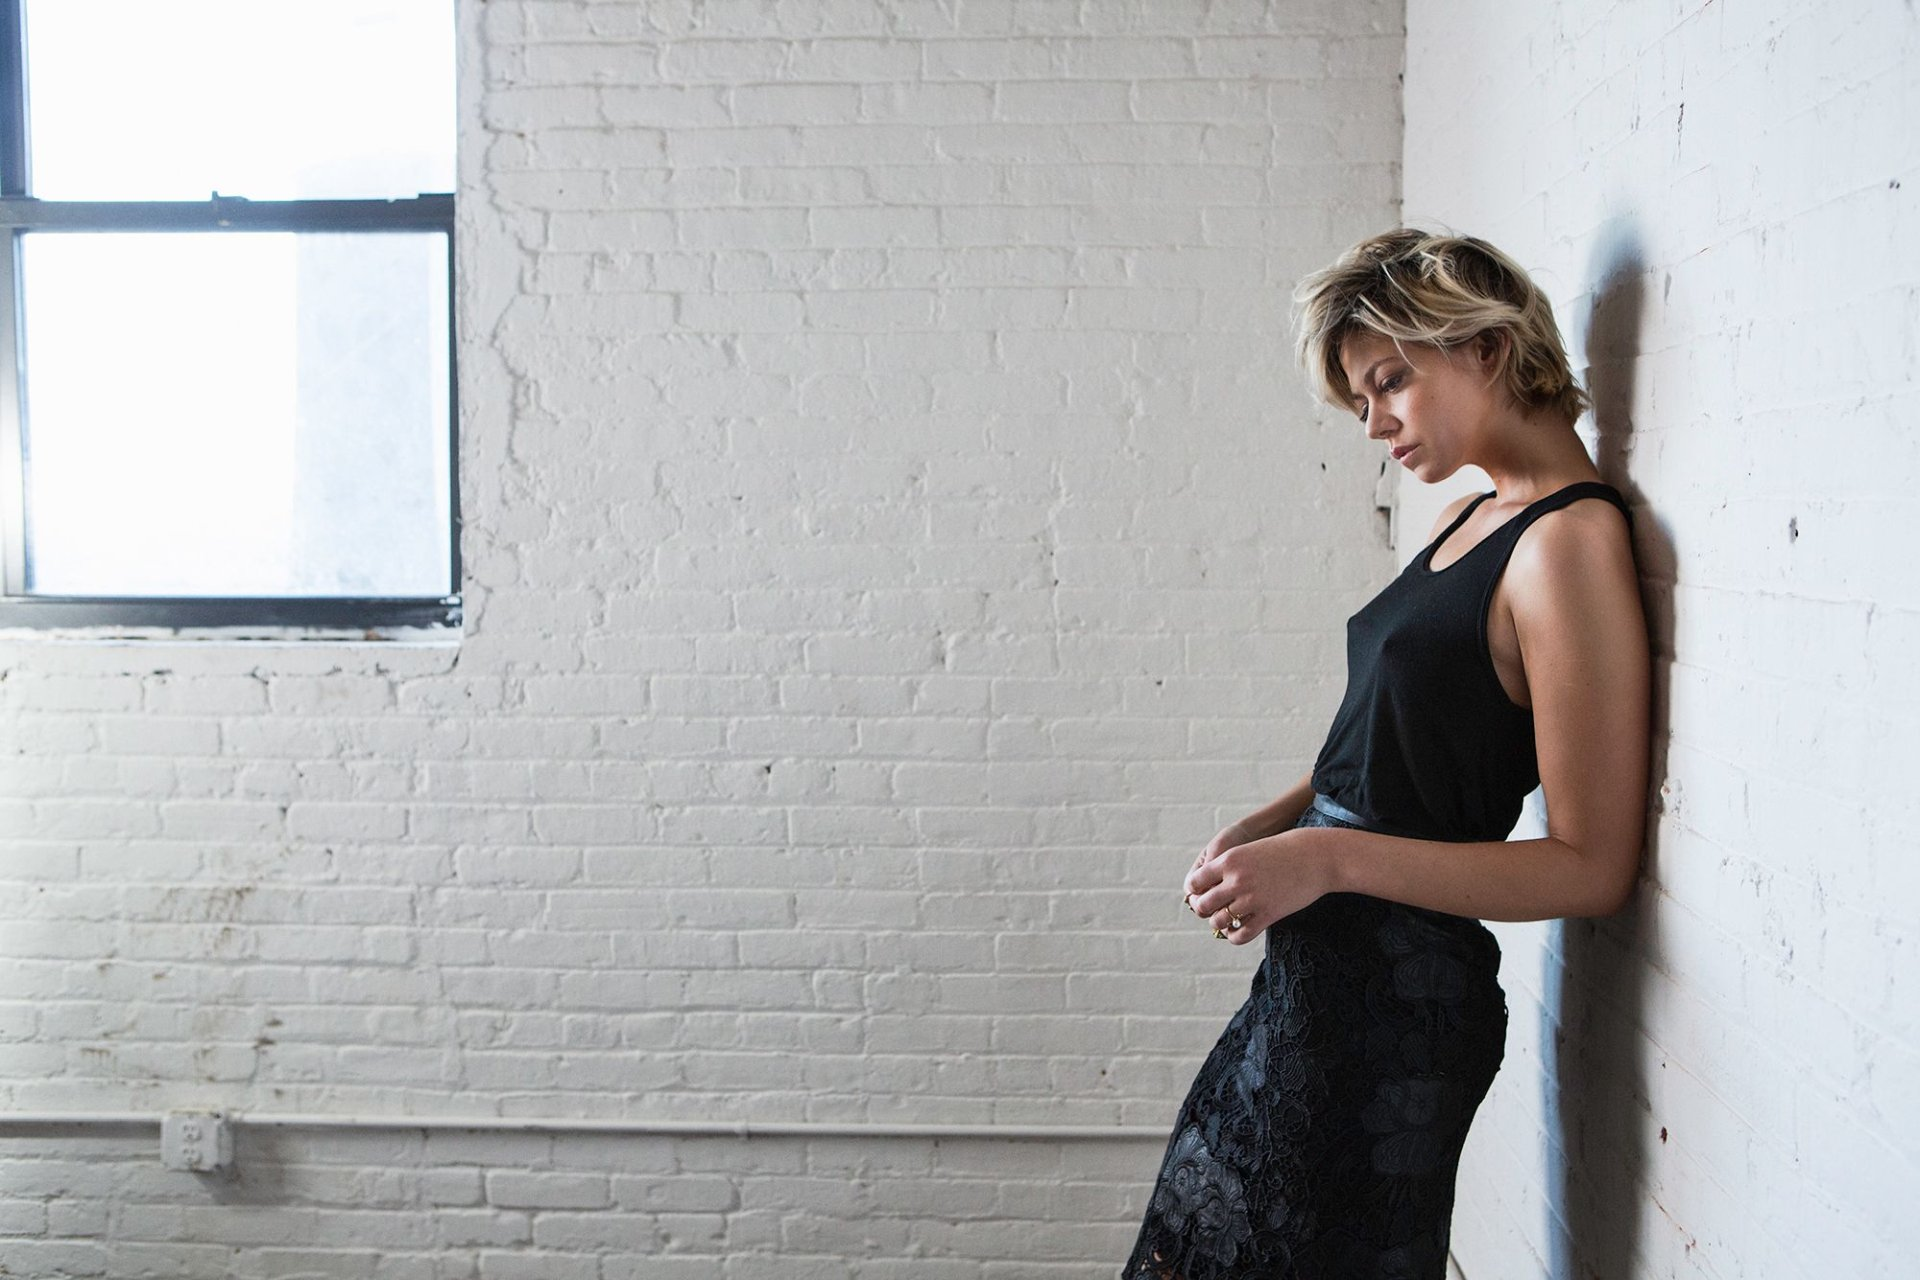 Analeigh Tipton Topless analeigh tipton see through (5 photos)   #thefappening